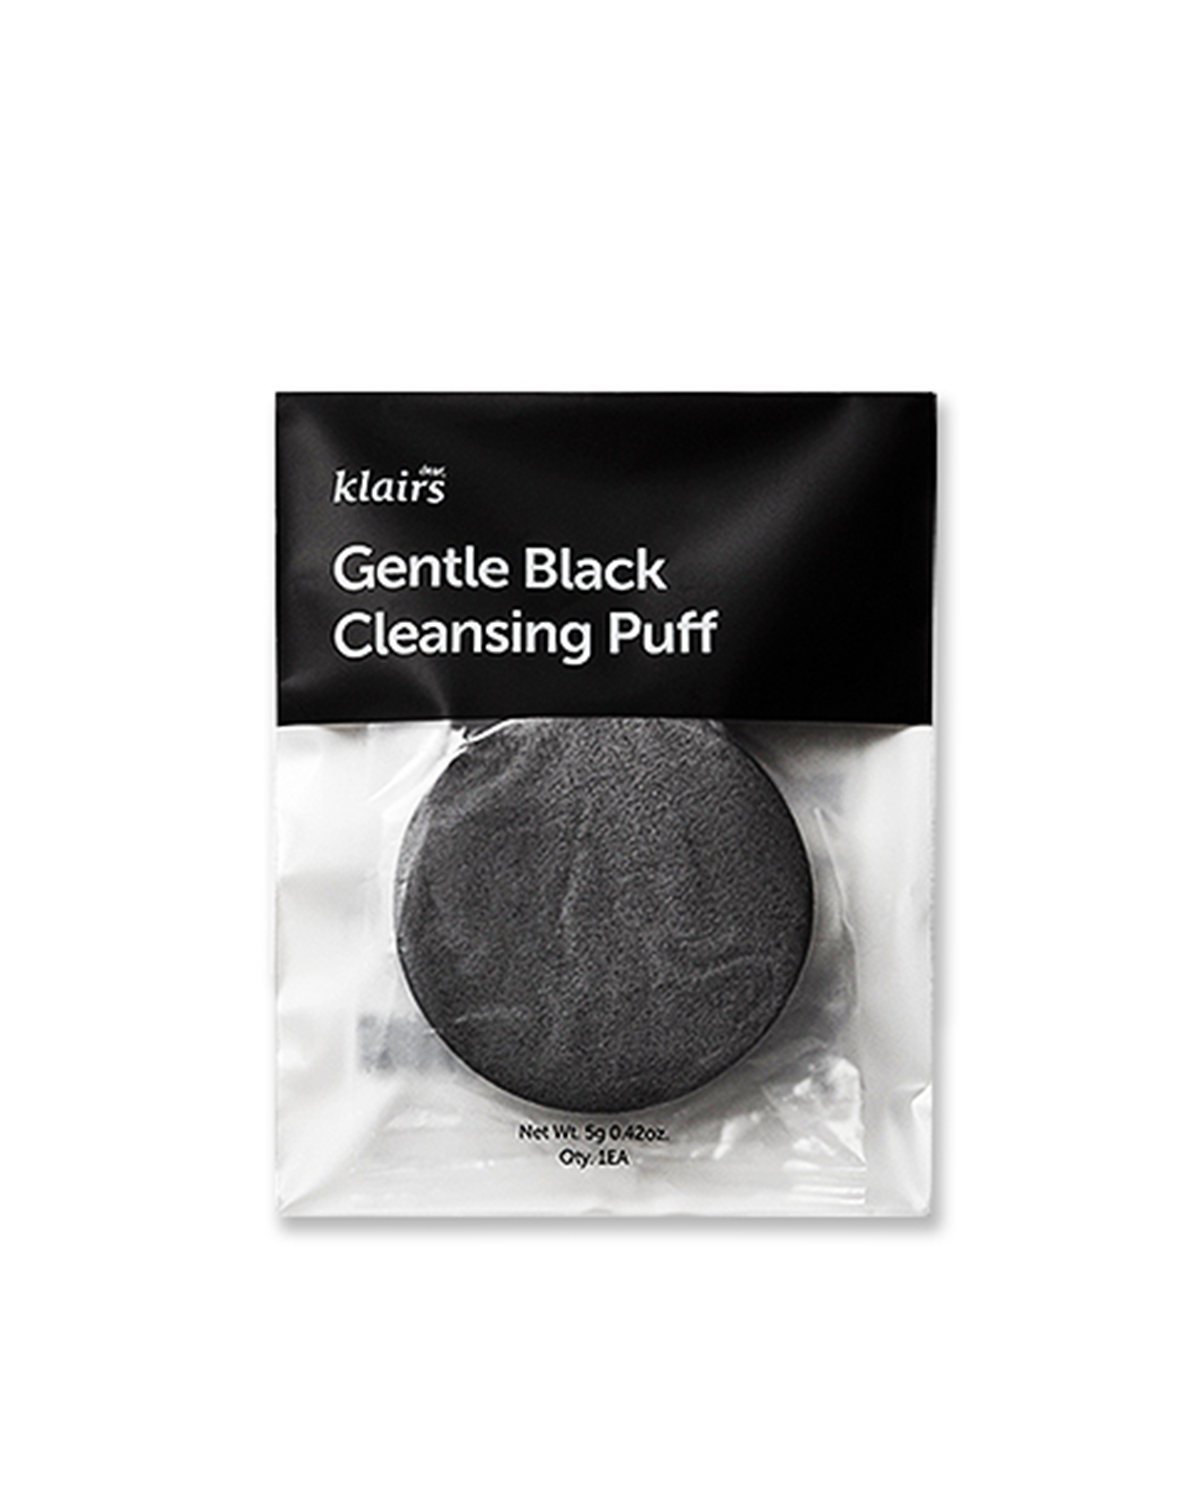 KLAIRS Gentle Black Cleansing Puff / Size: 80x80x13mm